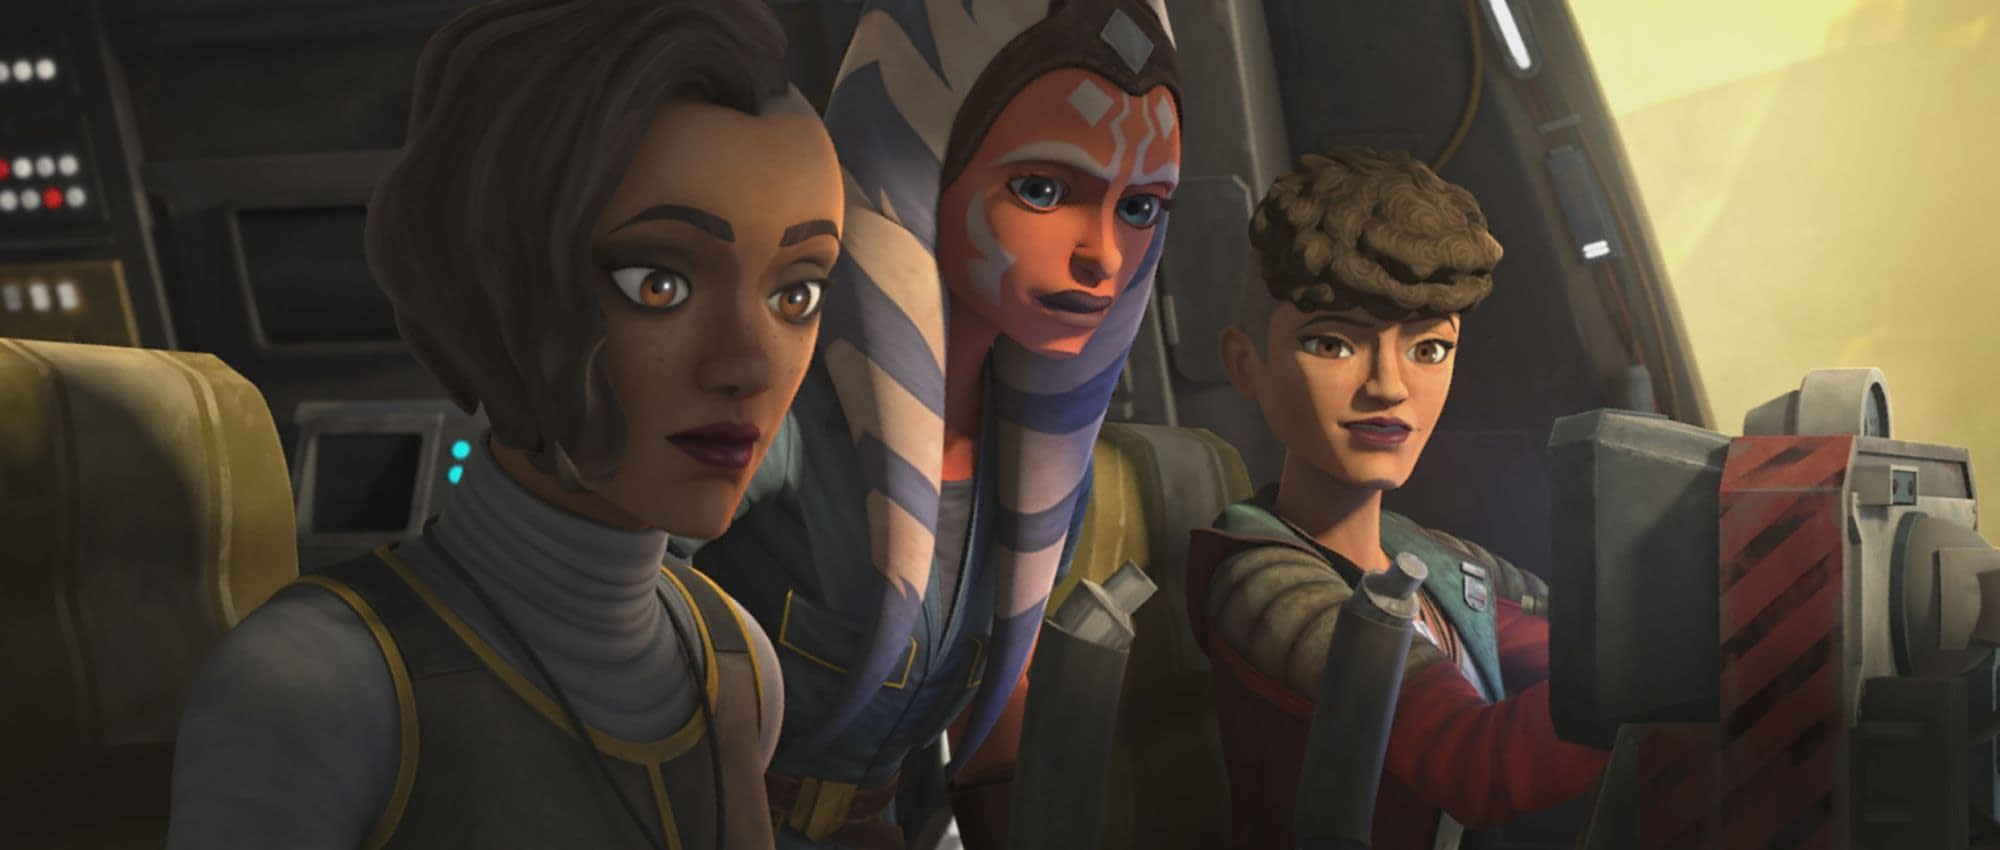 The Clone Wars With A Trace Ahsoka 2